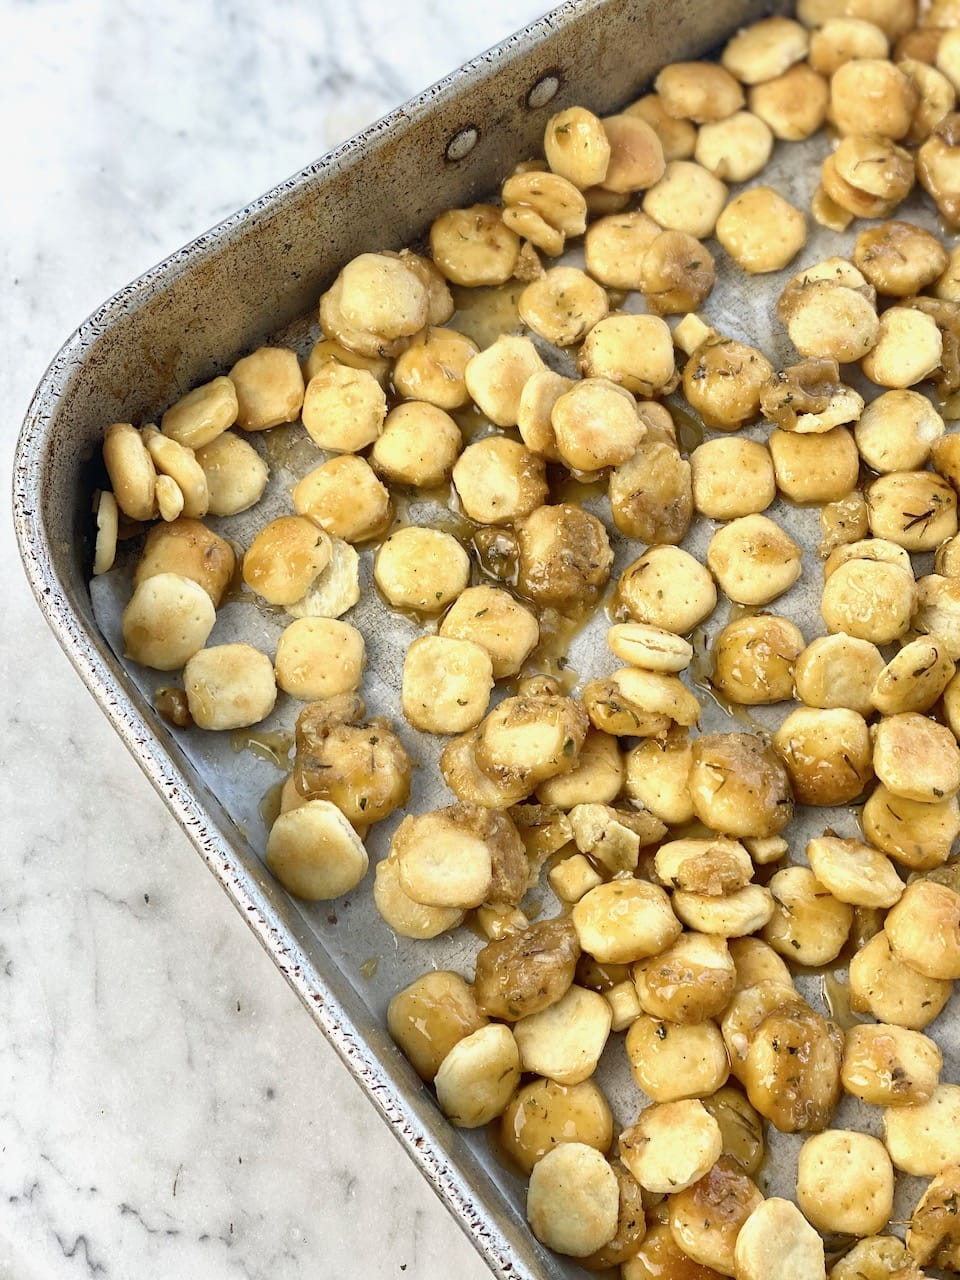 butter and sugar mixture poured over oyster cracker candy.